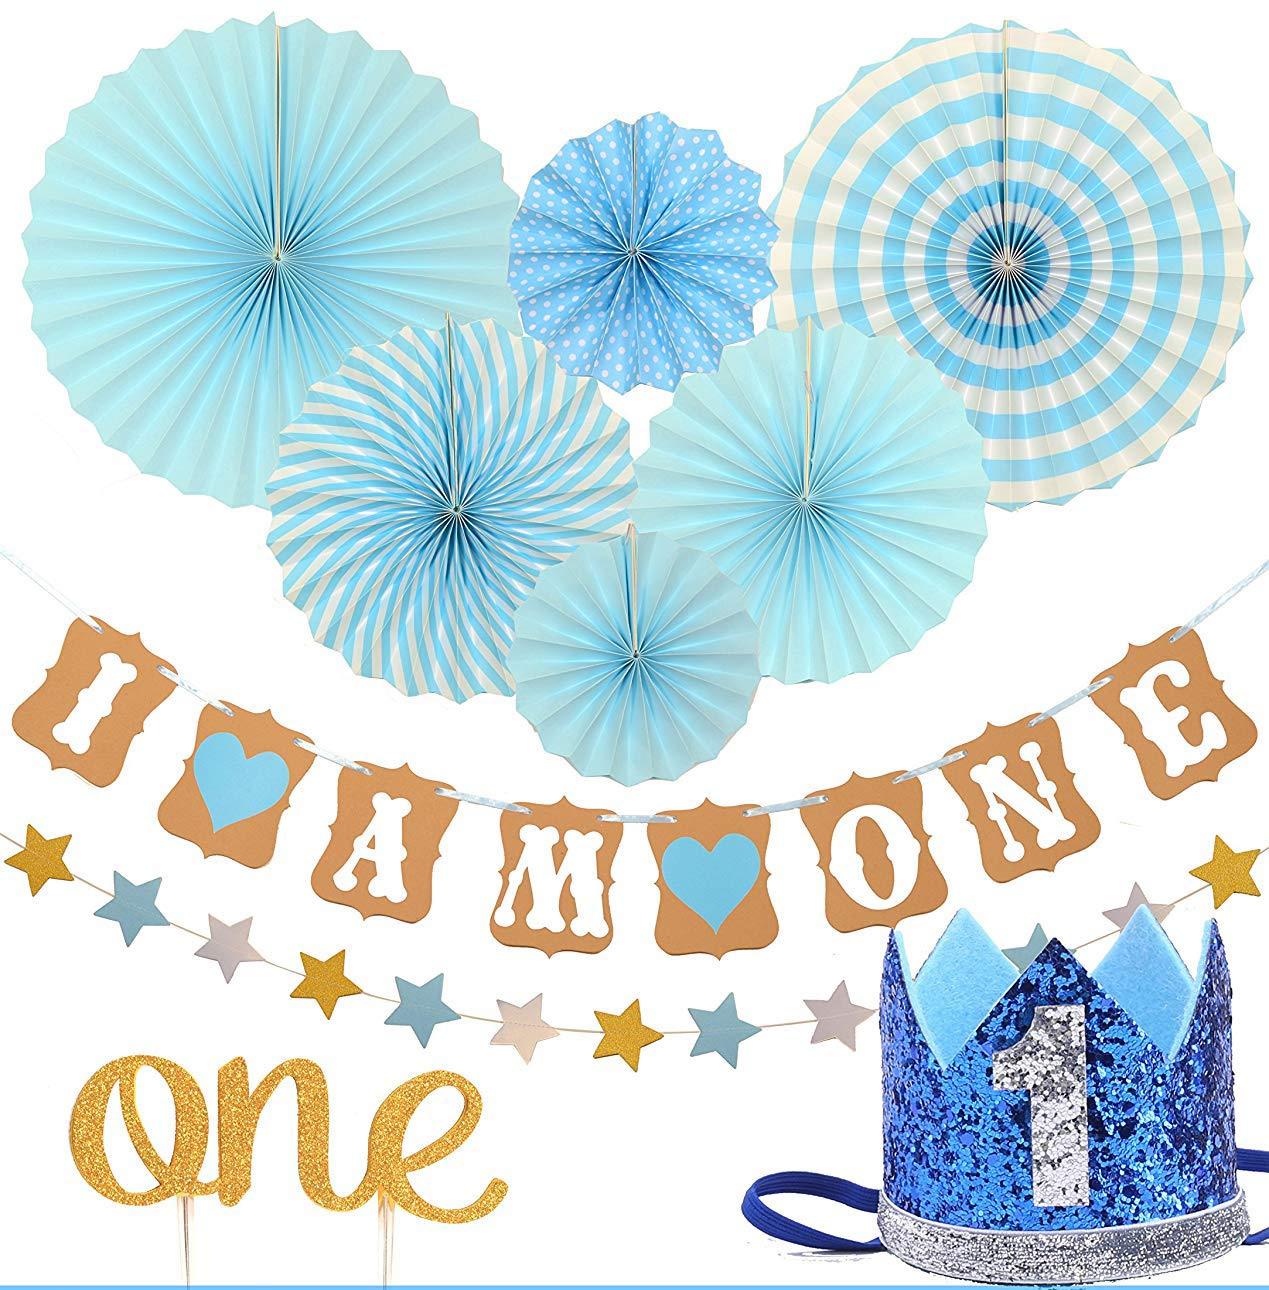 Fiesta Blue Hanging Paper Fan Flower Cake Topper -One Meant2ToBe Circle Dots Paper Garland Blue Hat Crown Cake Topper -One FIRST BIRTHDAY DECORATION SET FOR BOY- 1st Baby Boy Birthday Party Party Decorations - Banner